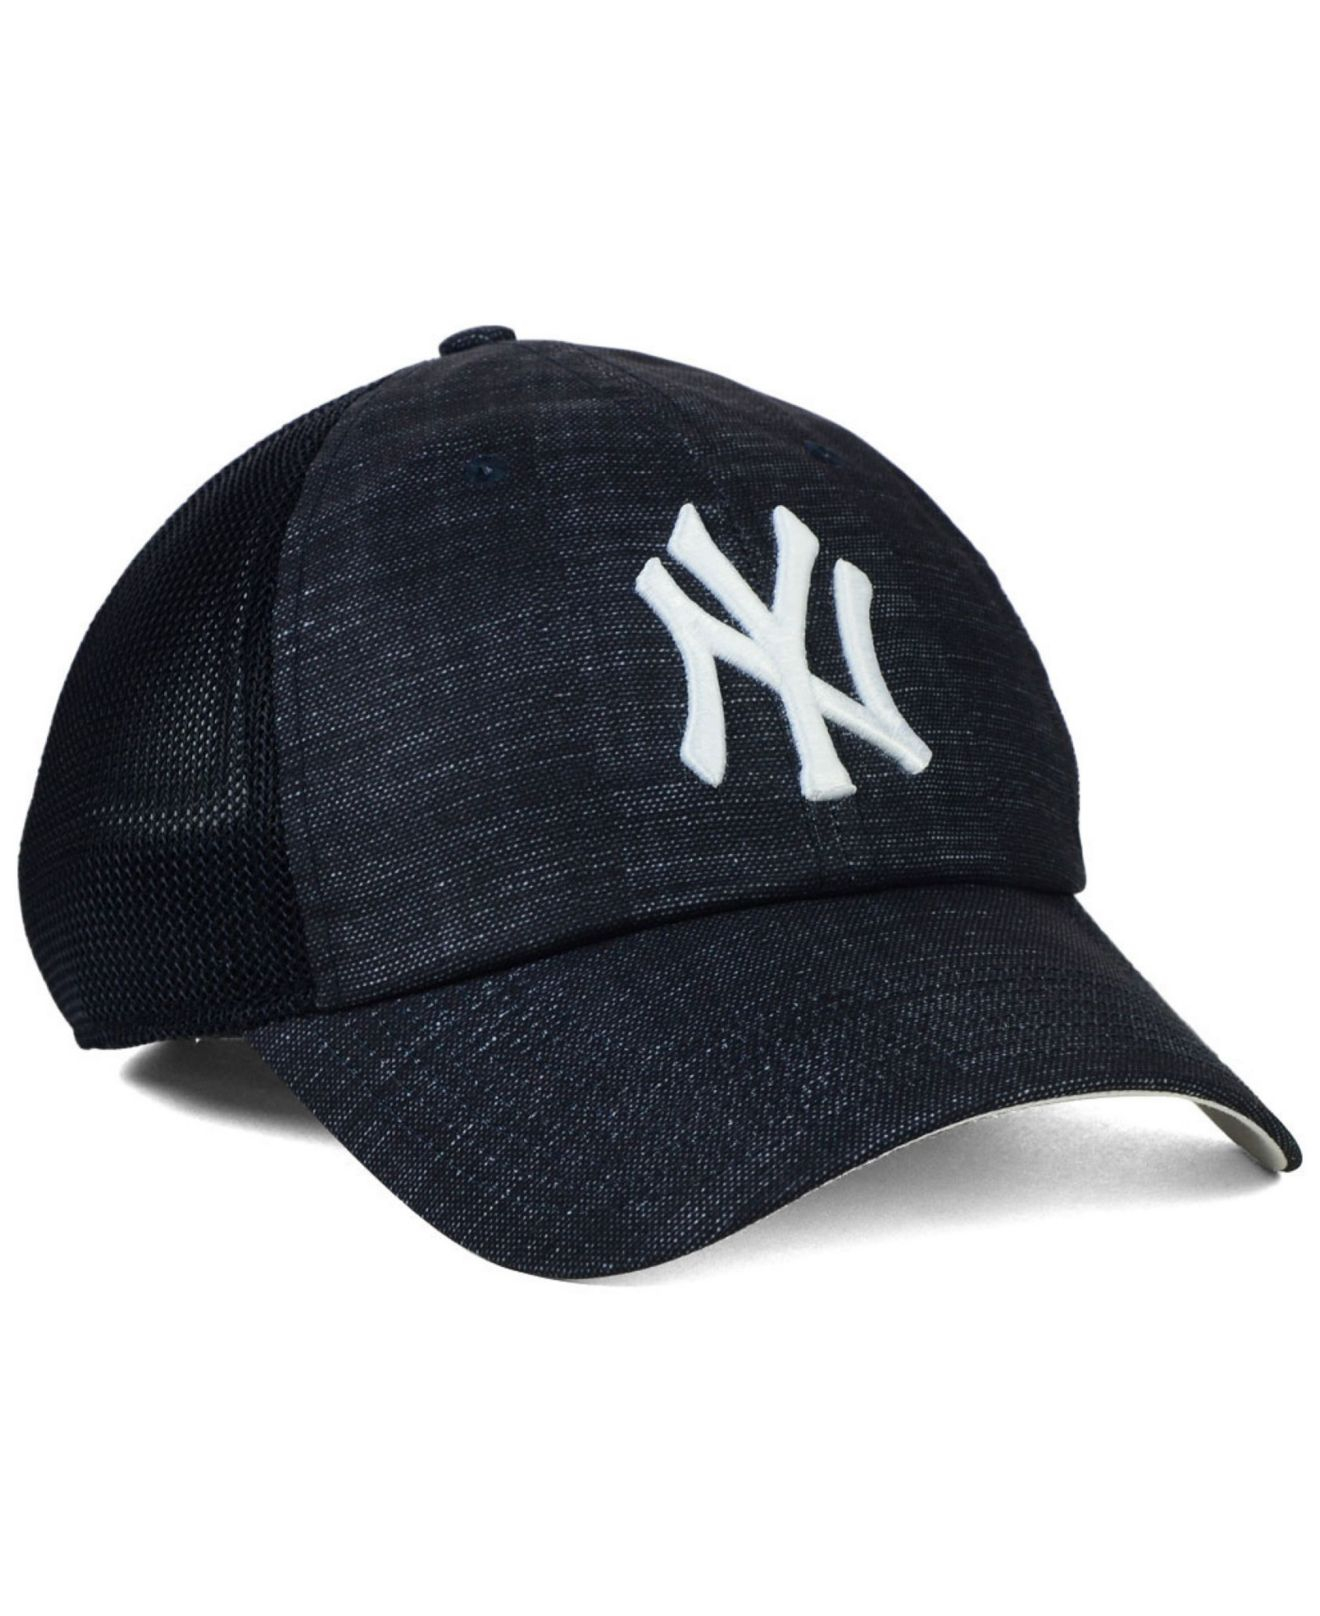 8a14b525 ... norway lyst nike new york yankees dri fit adjustable cap in blue for  men 67dac bf5d1